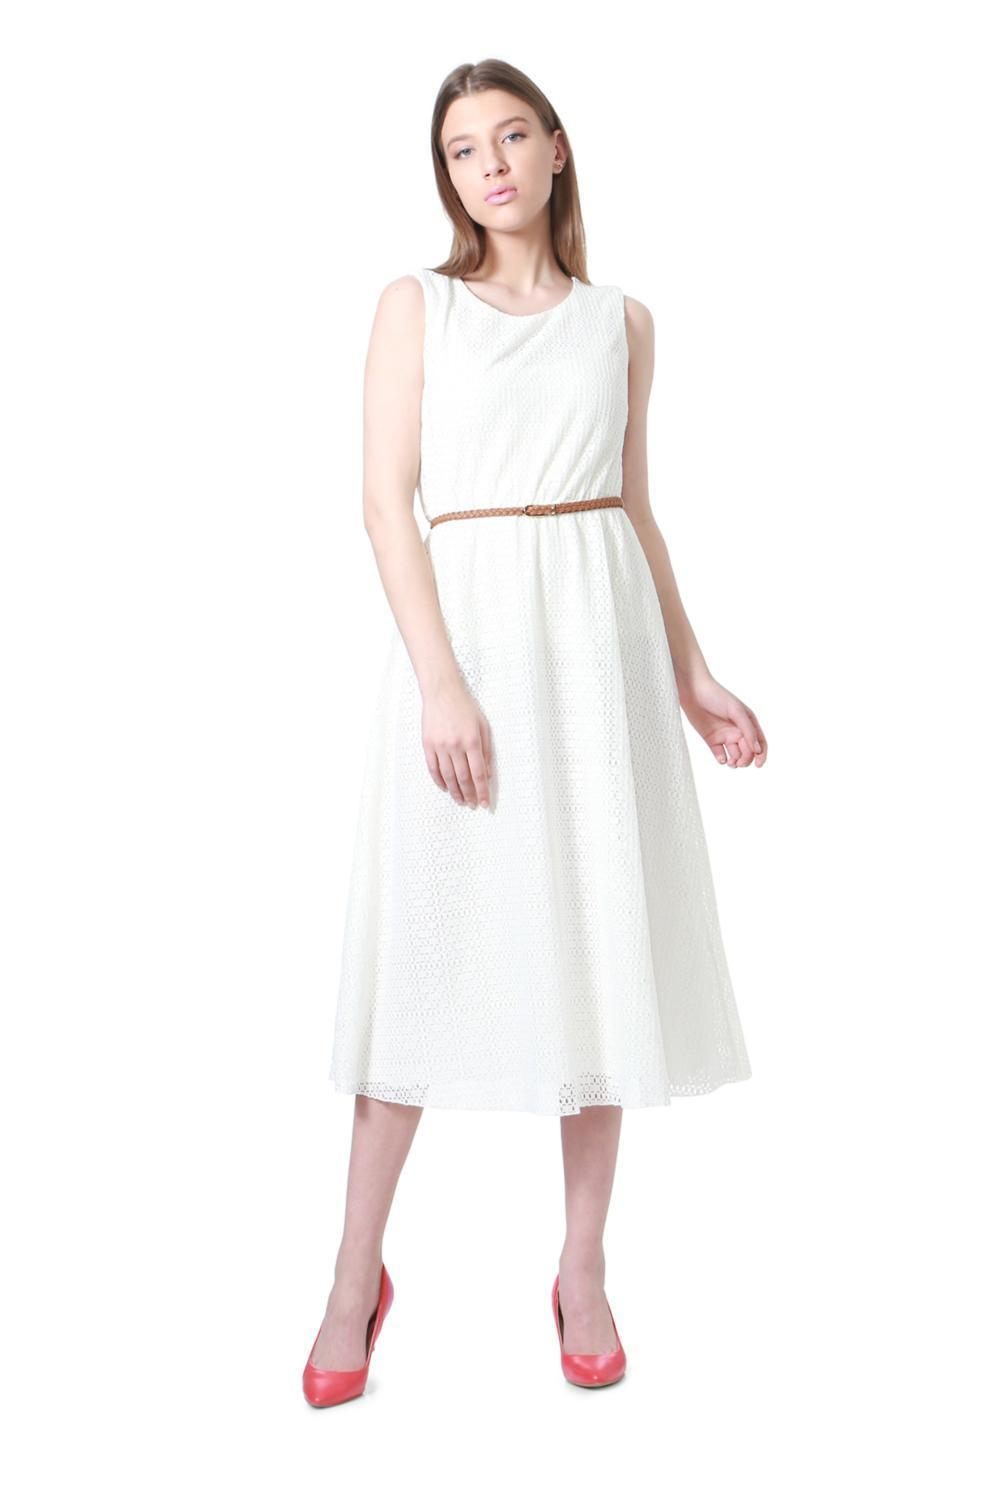 cbbecdbf42a5a Solly Dresses, Allen Solly White Dress for Women at Allensolly.com